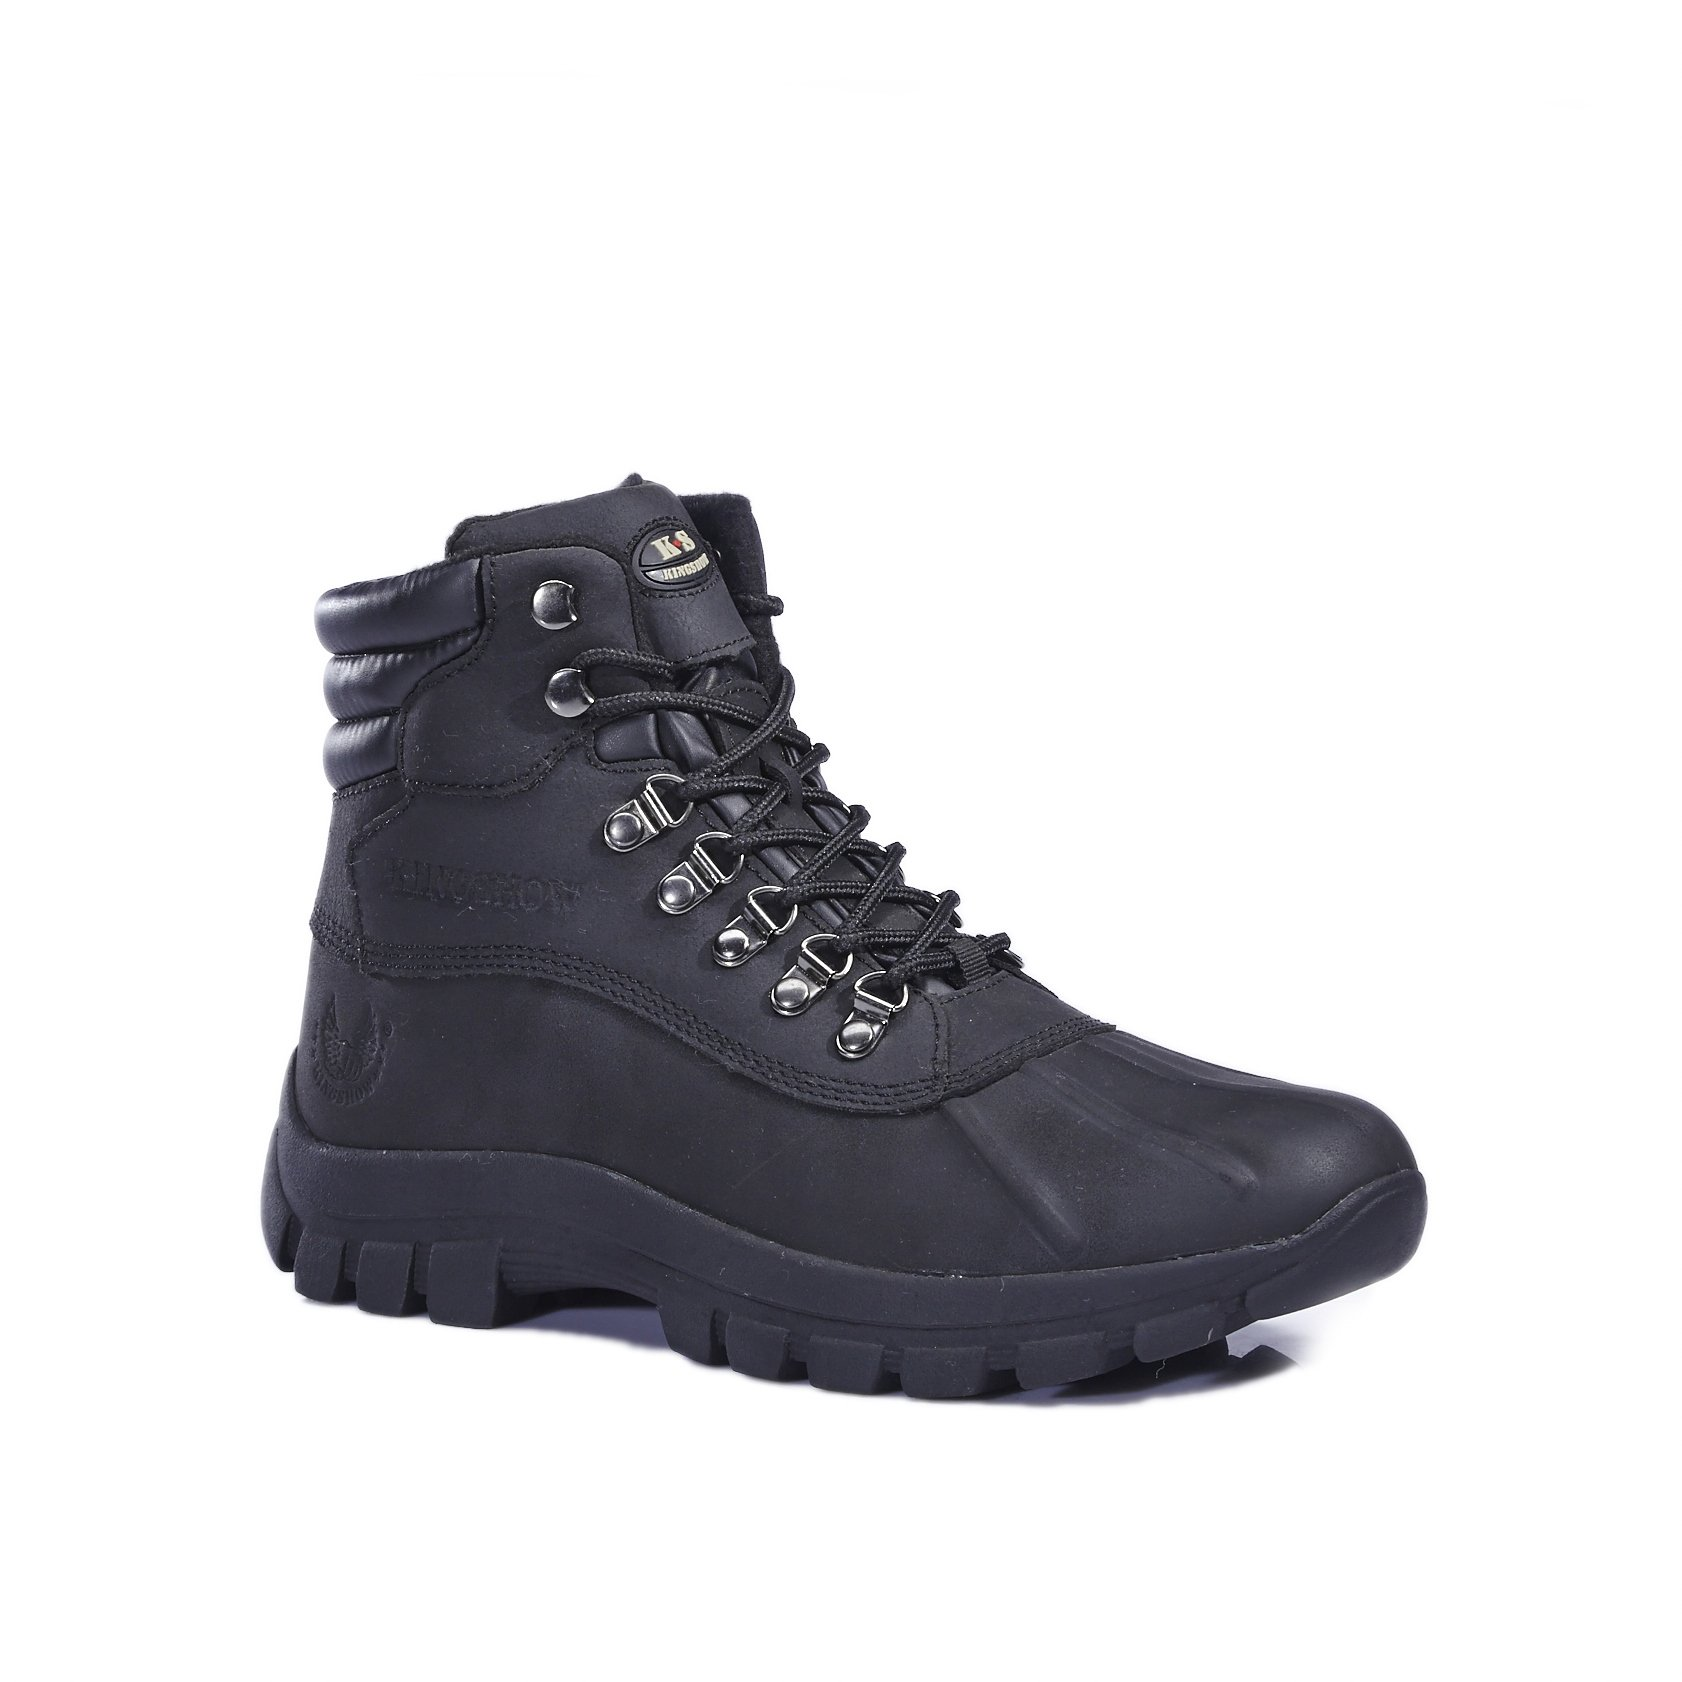 Black Waterproof Boots: Amazon.com